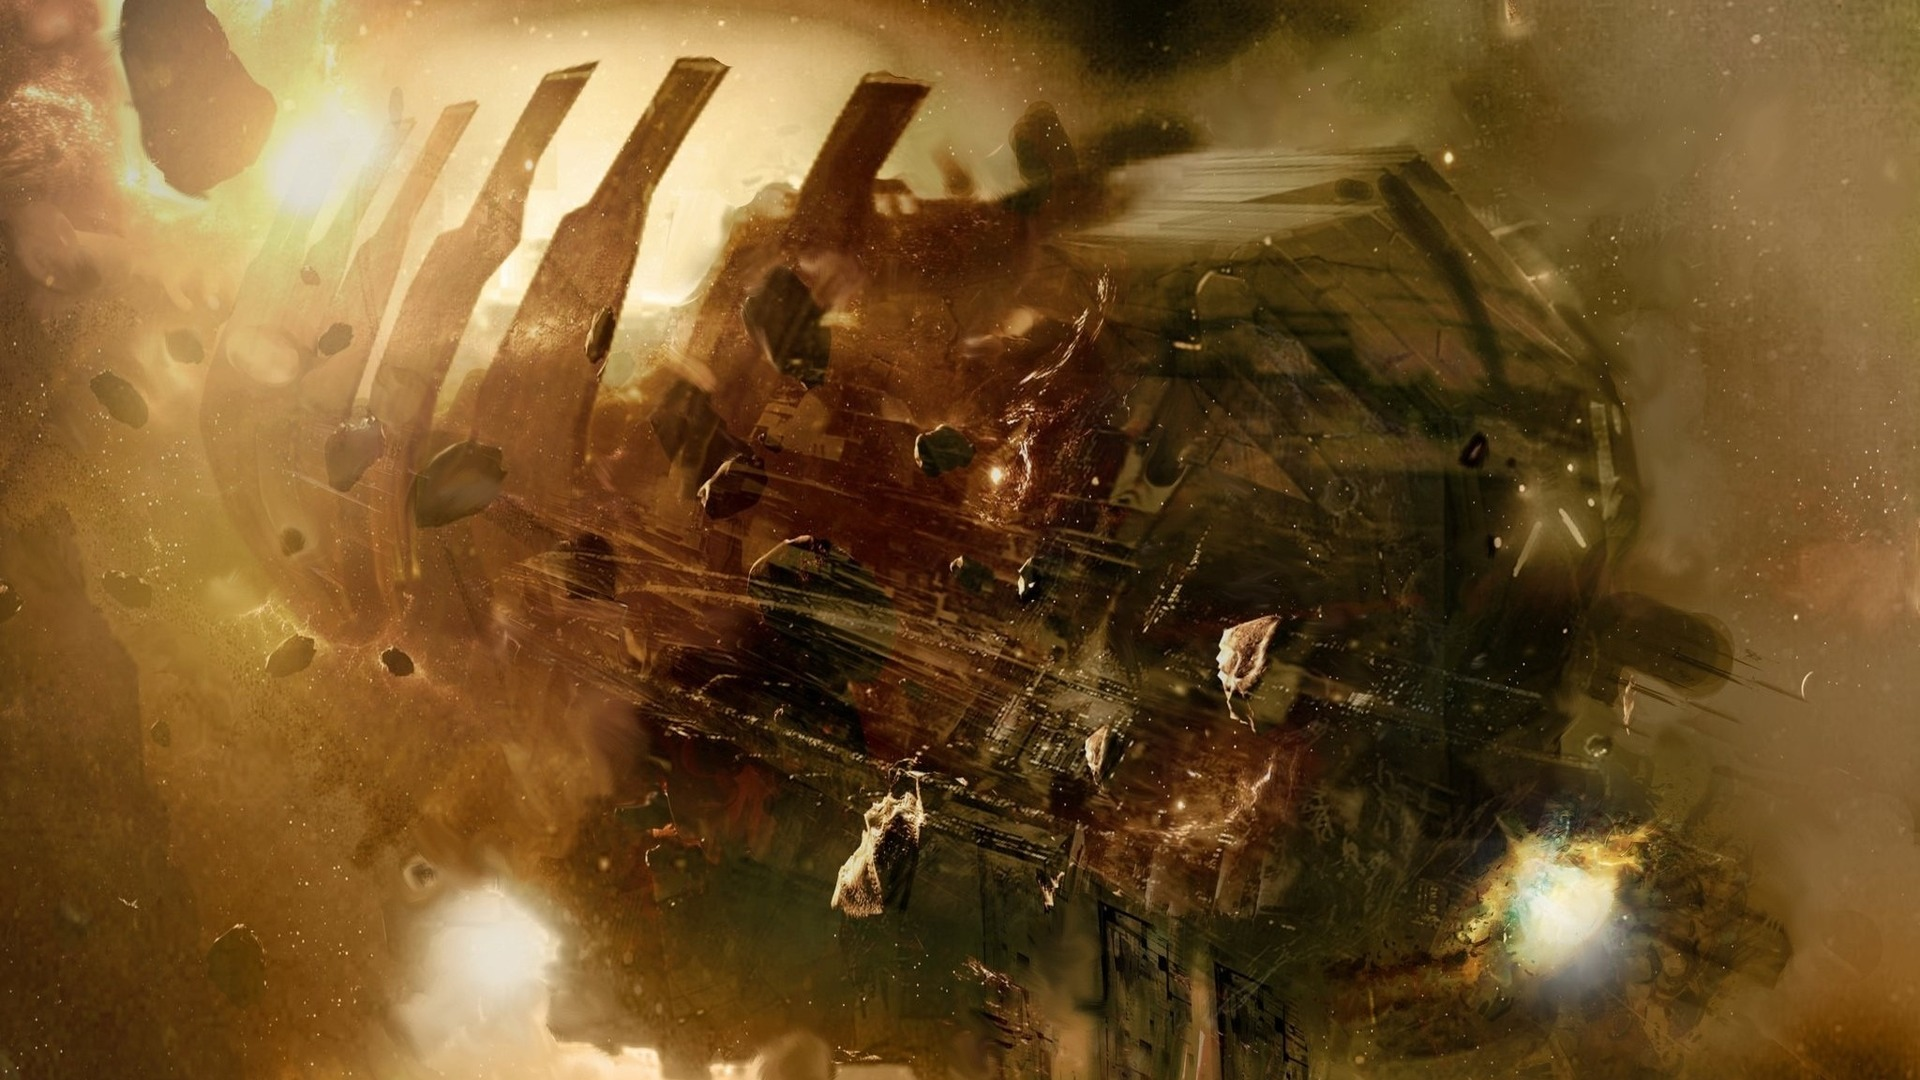 1 usg ishimura hd wallpapers background images - Dead space 1 wallpaper hd ...